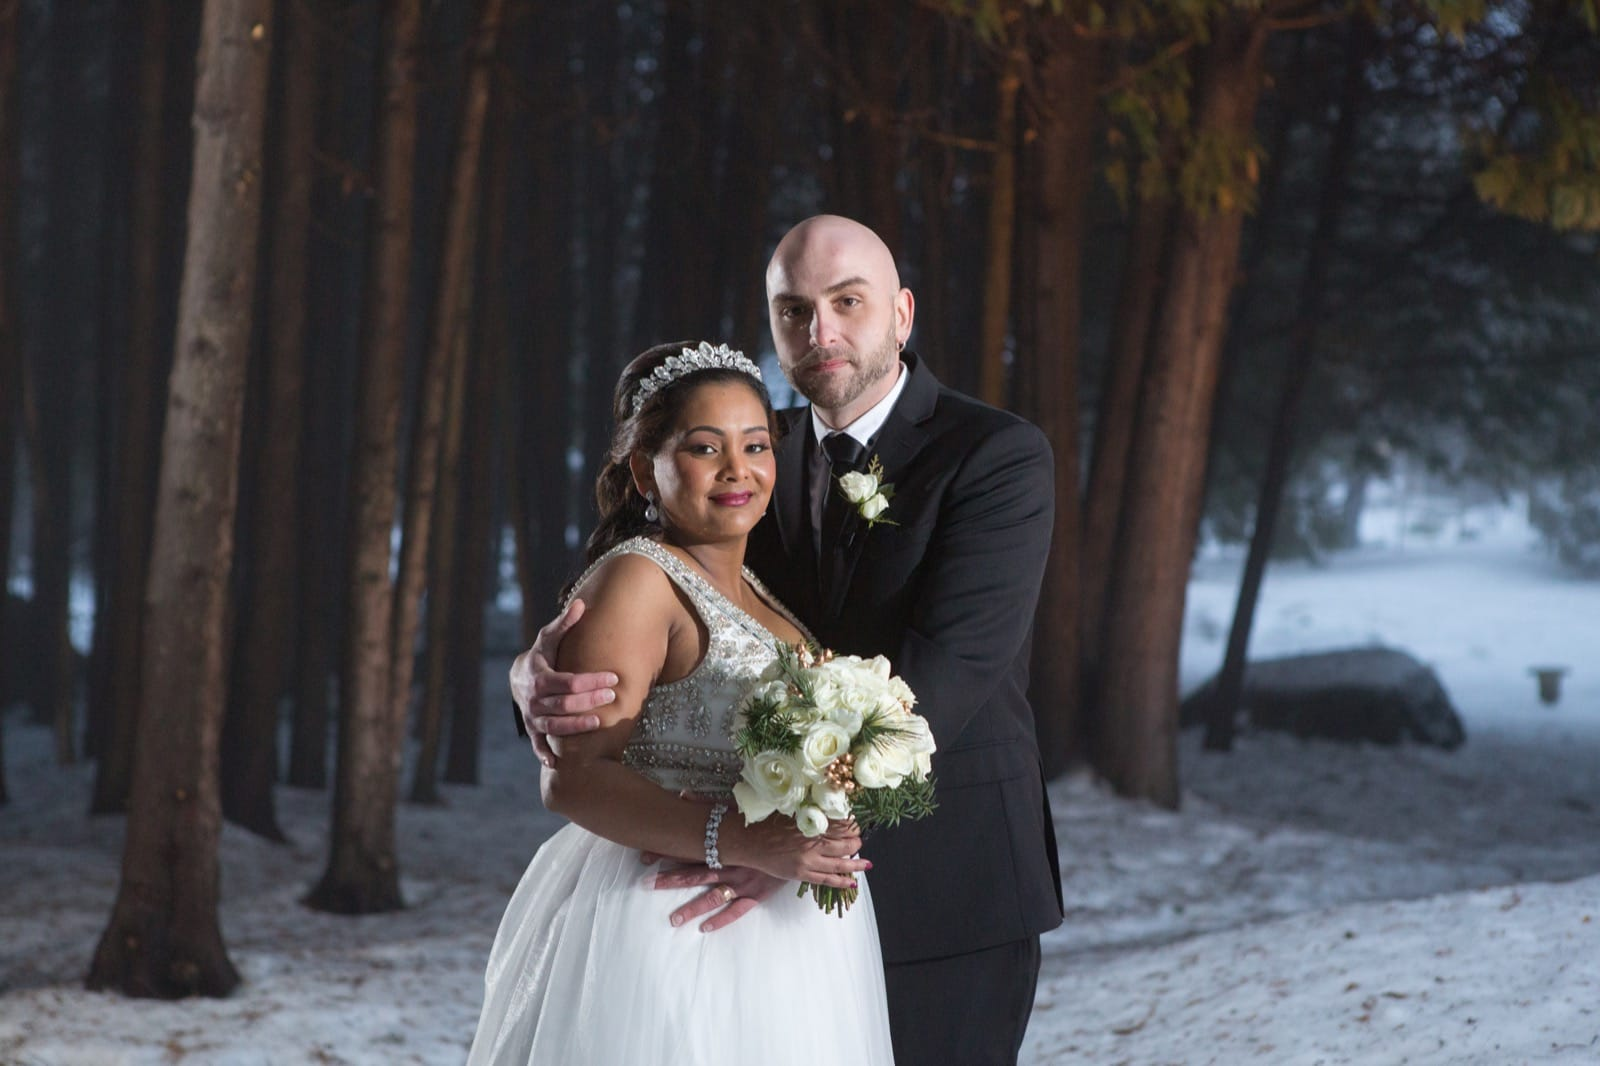 Winter wedding at the Millcroft Inn & Spa